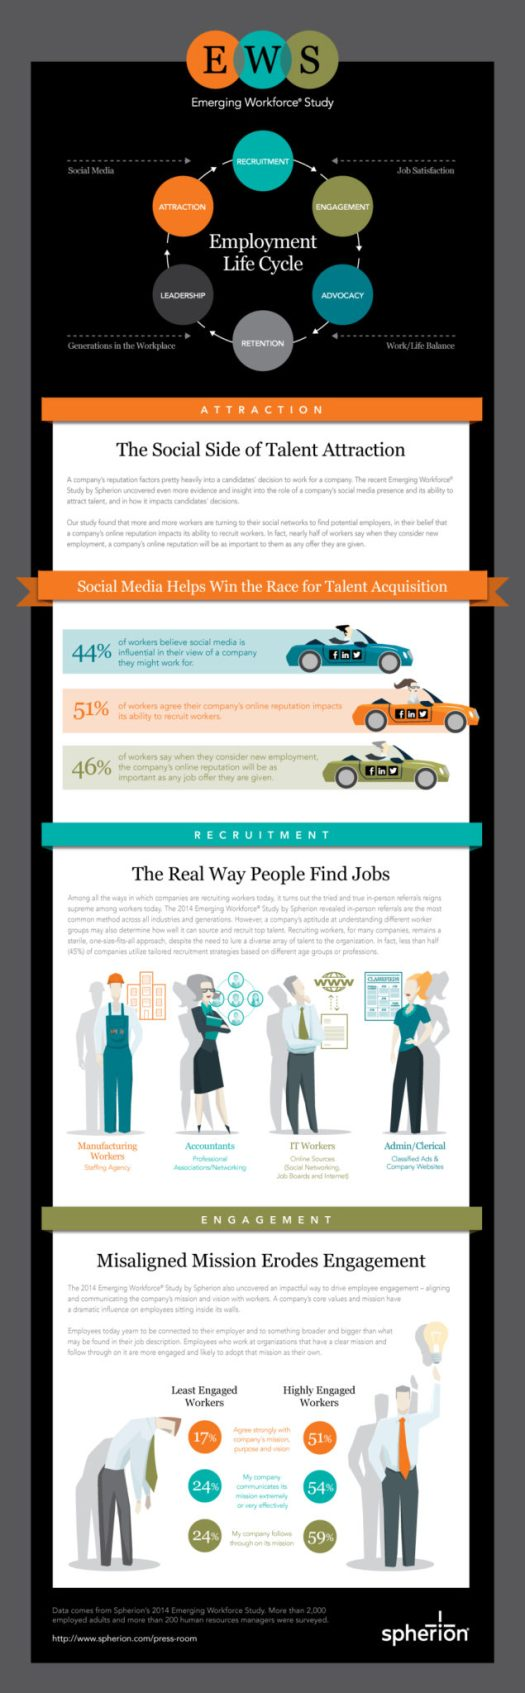 Spherion-EWS-Employment-Life-Cycle-Infographic-1-1